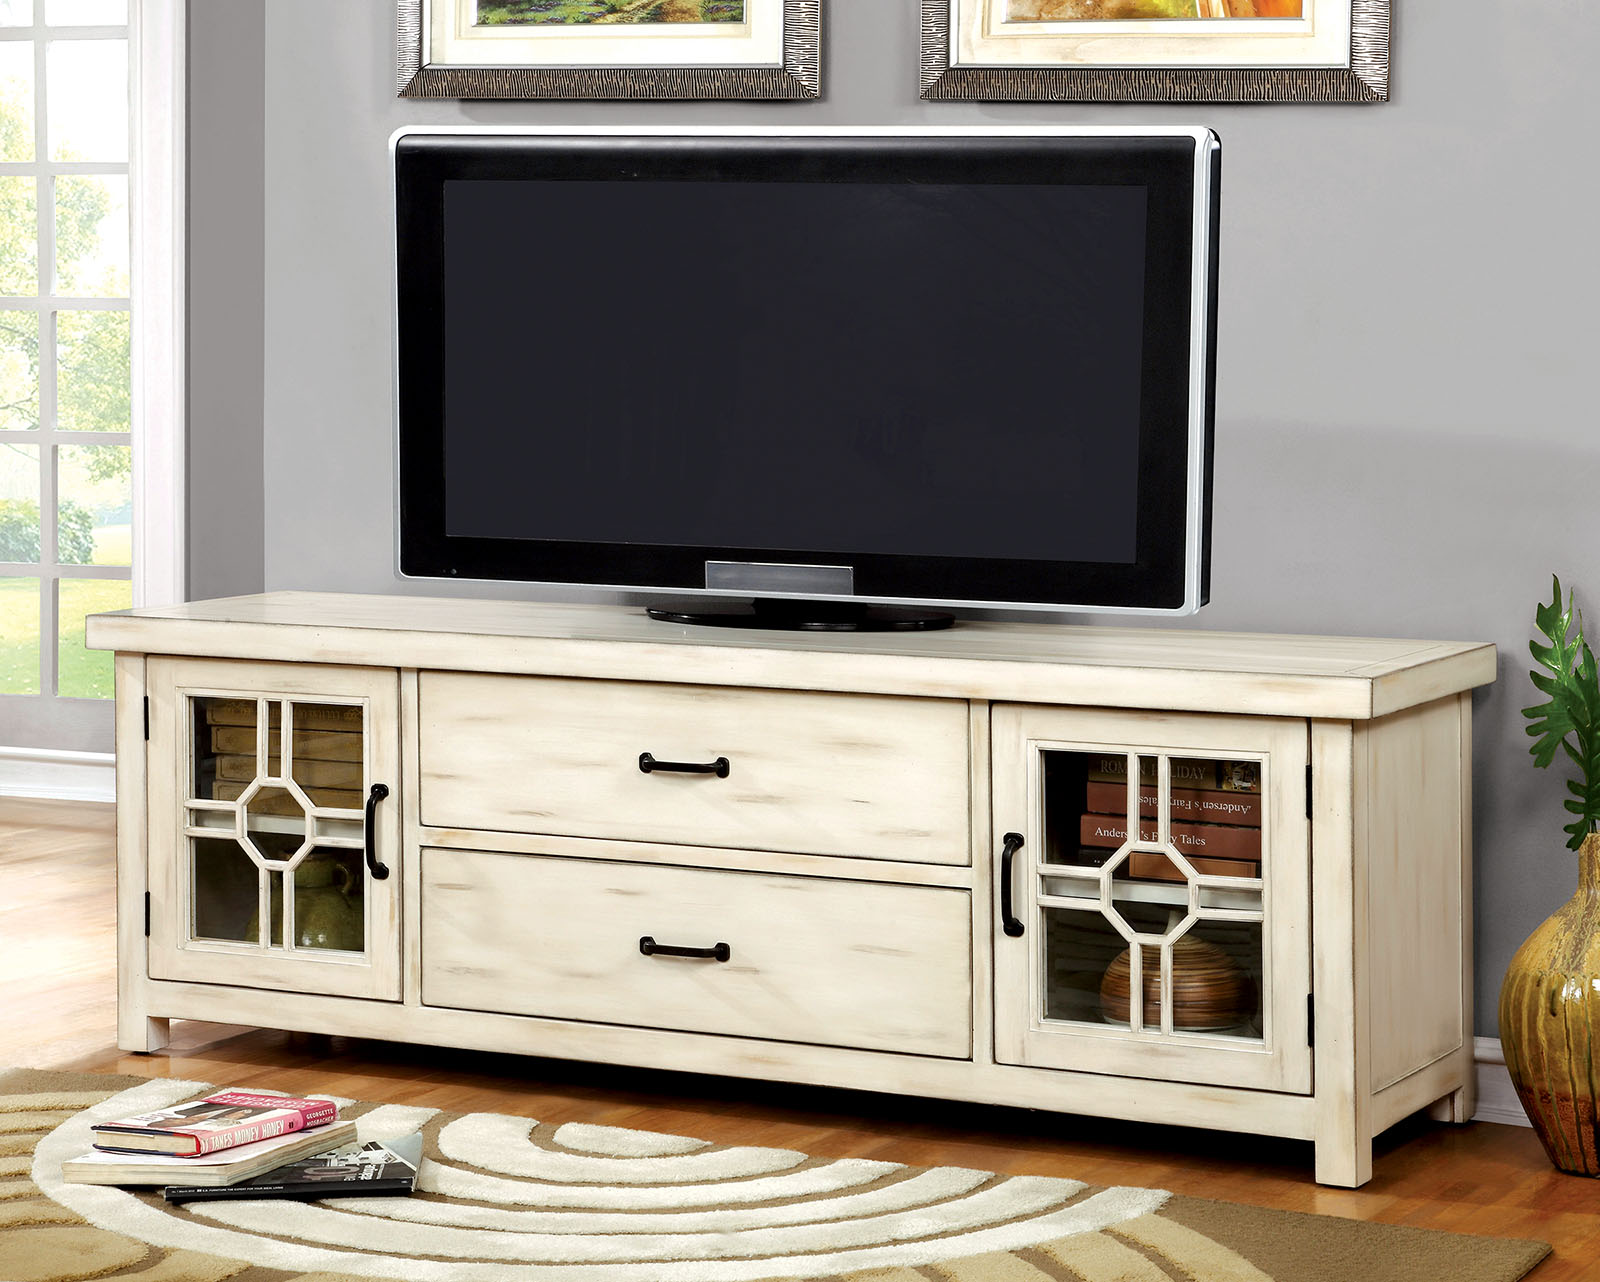 Tv television stands austin s furniture - Ridley Cm5230 Rustic White 62 Tv Stand